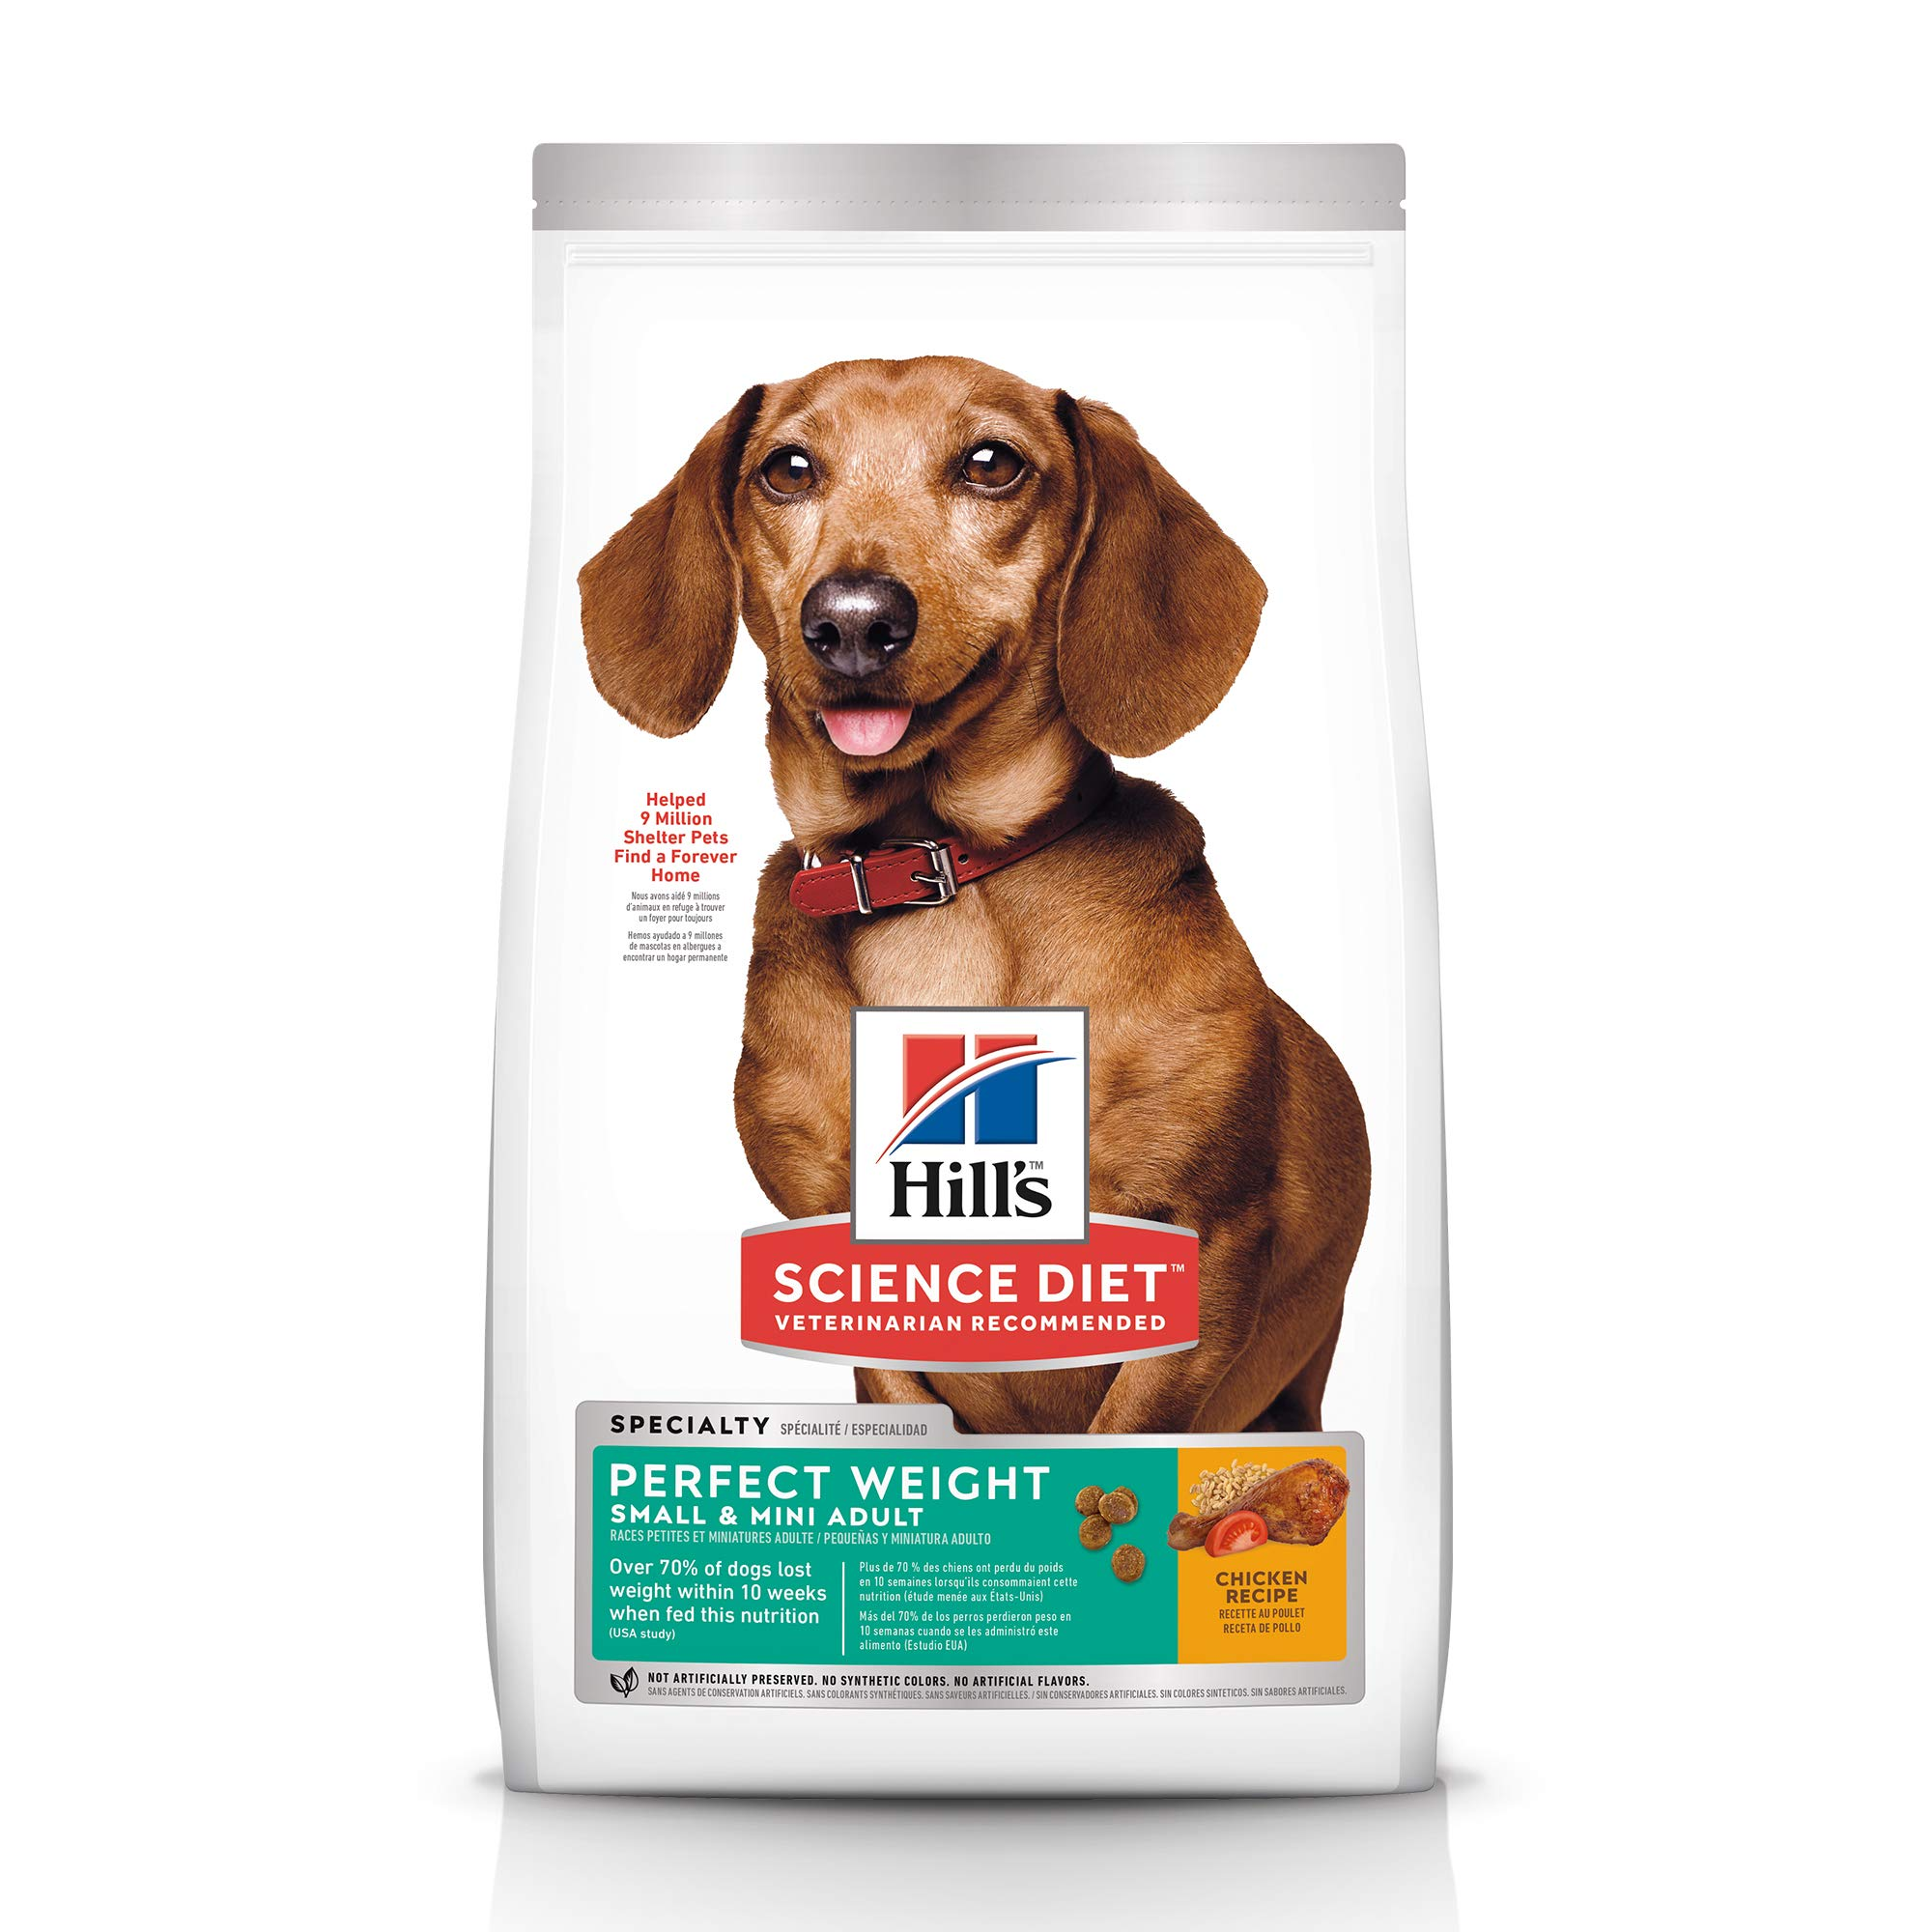 Hill's Science Diet Dry Dog Food, Adult, Perfect Weight for Healthy Weight & Weight Management, Small & Mini, Chicken Recipe, 15 lb Bag by Hill's Science Diet